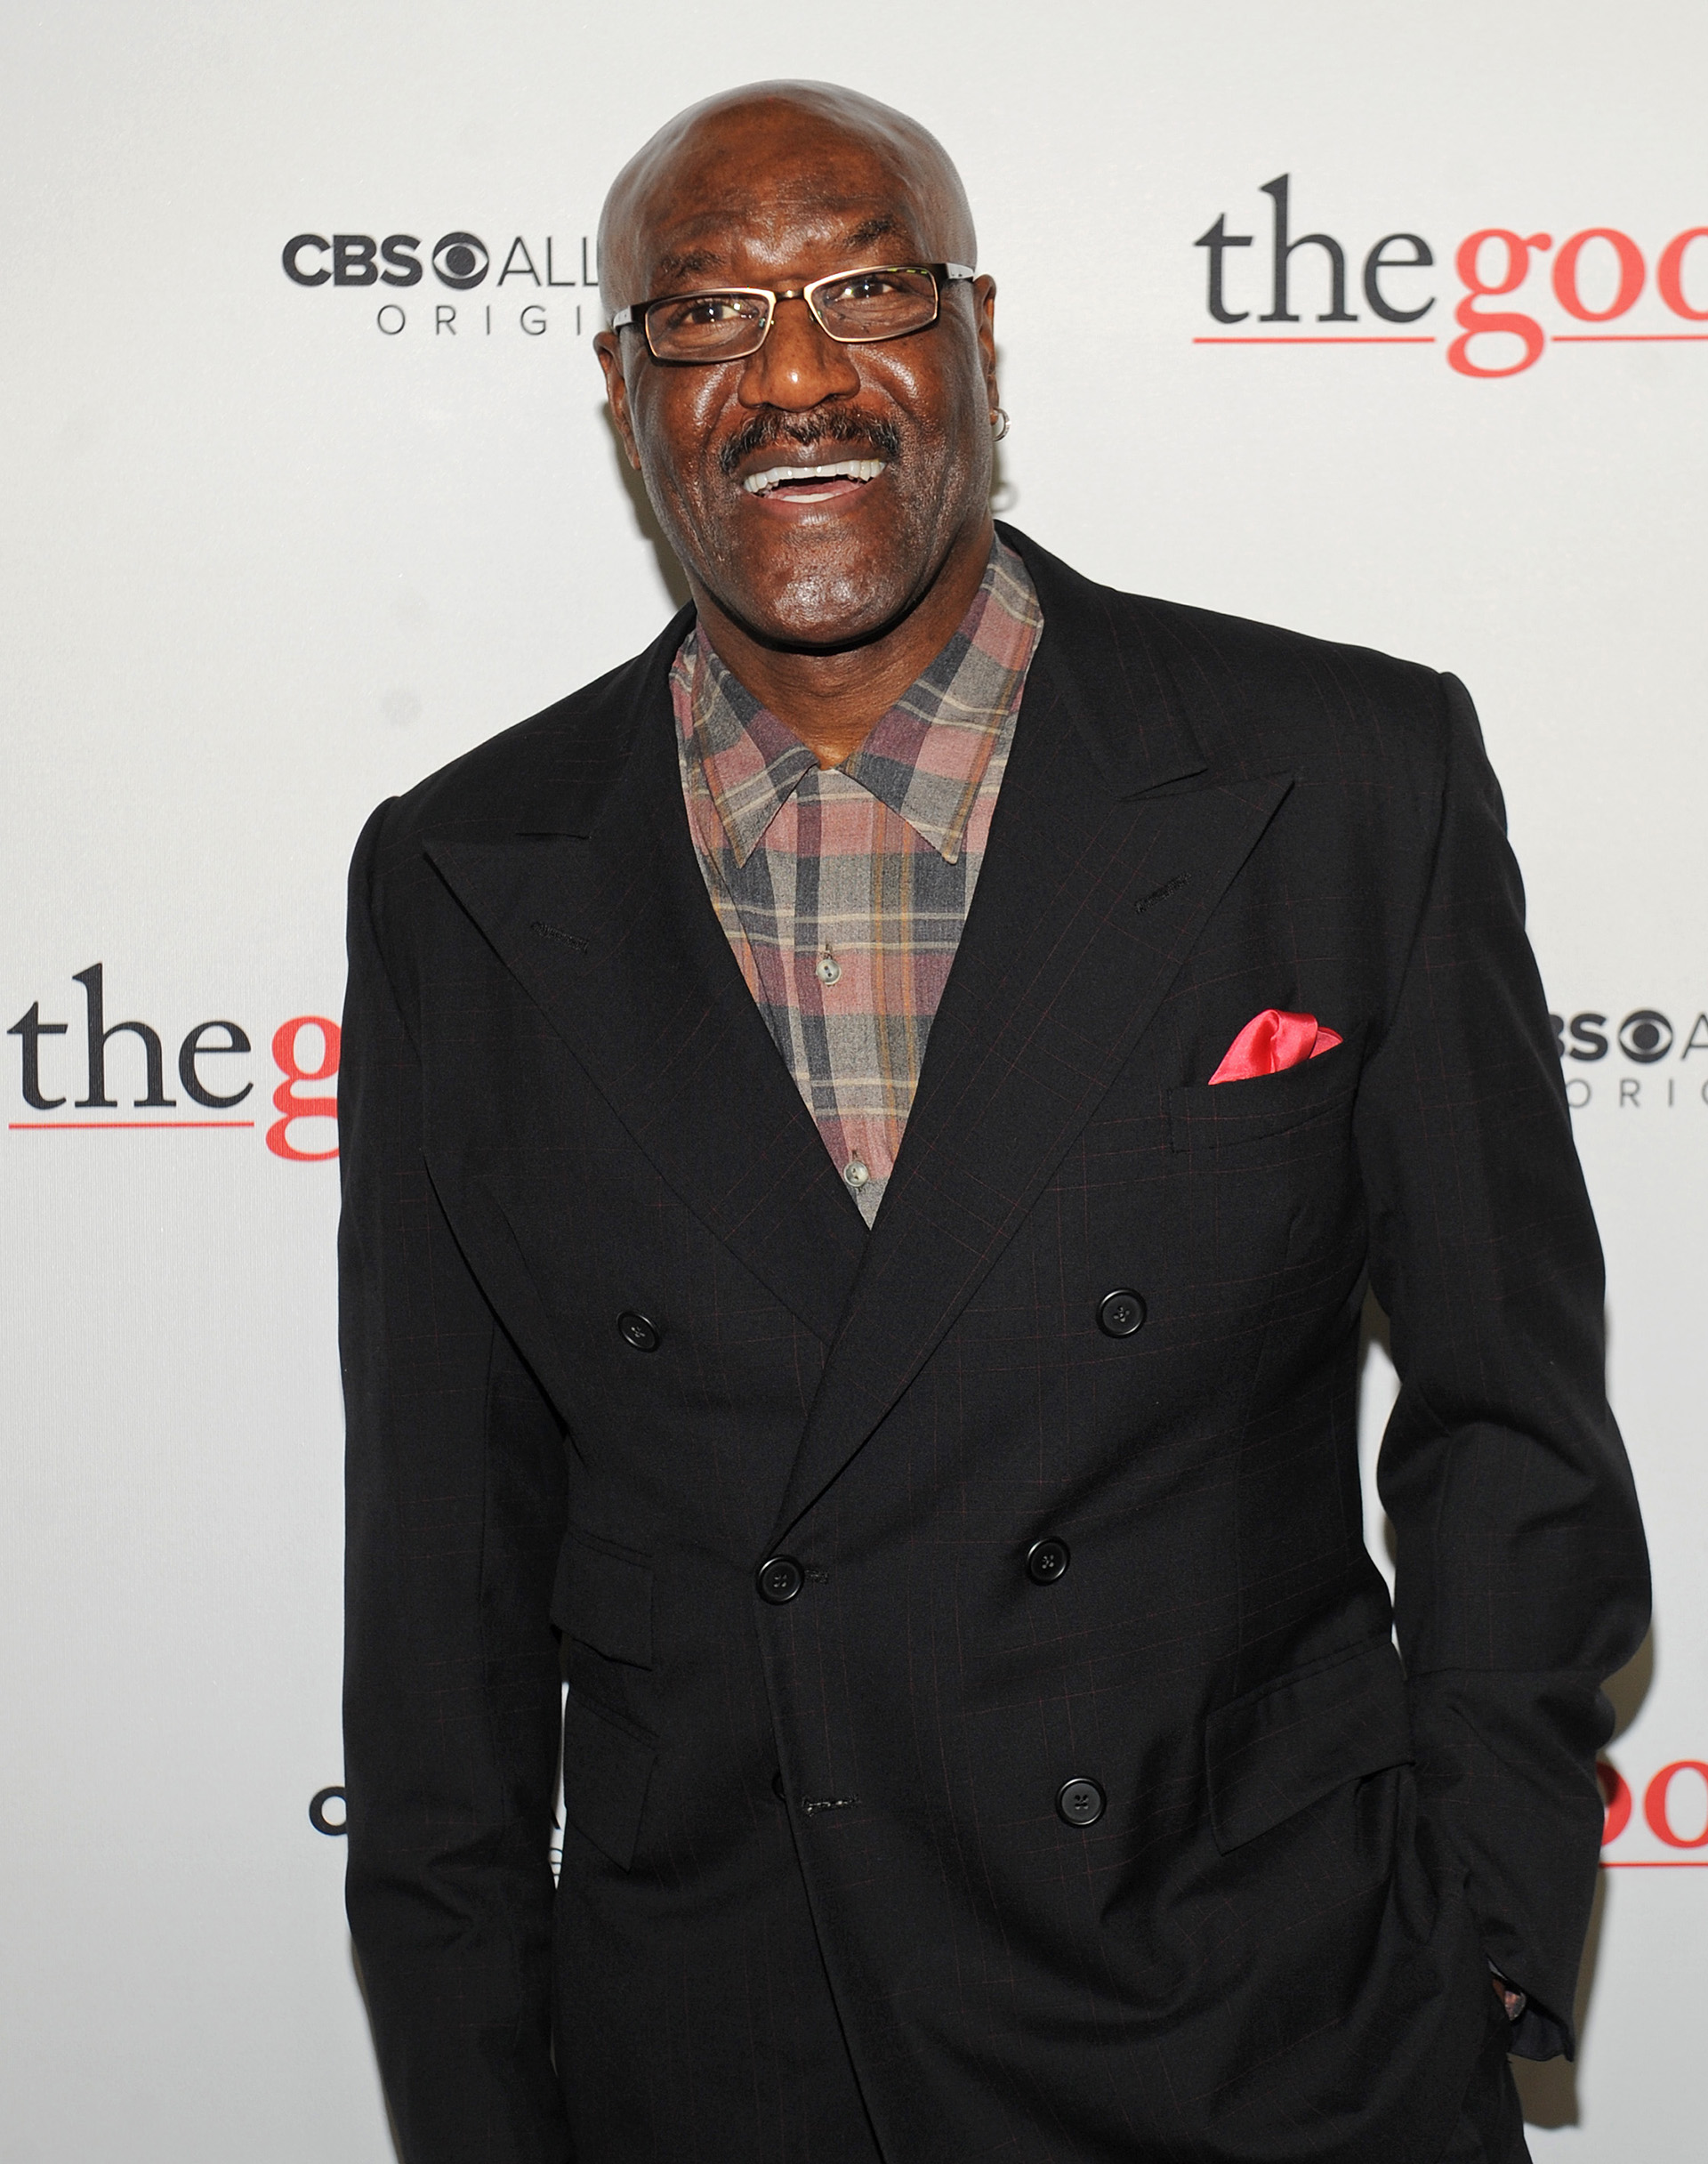 The always-dapper Delroy Lindo matched his pocket square with the red carpet!